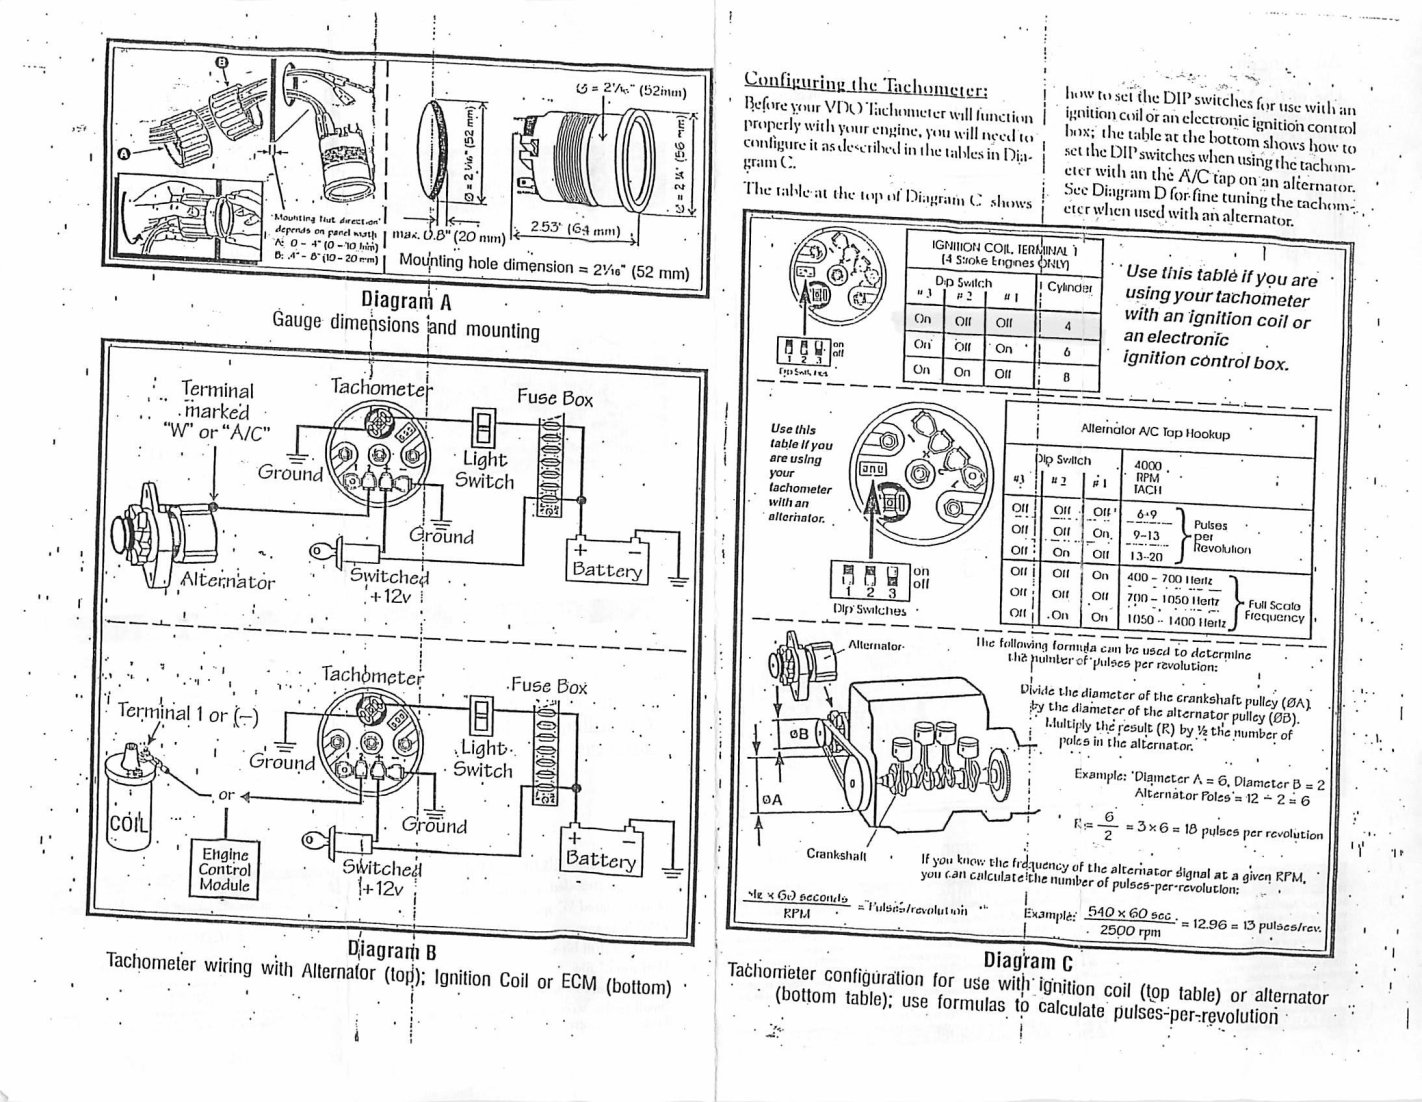 thesamba.com :: vdo tachometer instructions vdo kitas wiring diagram vdo tachometer wiring diagram 1 min